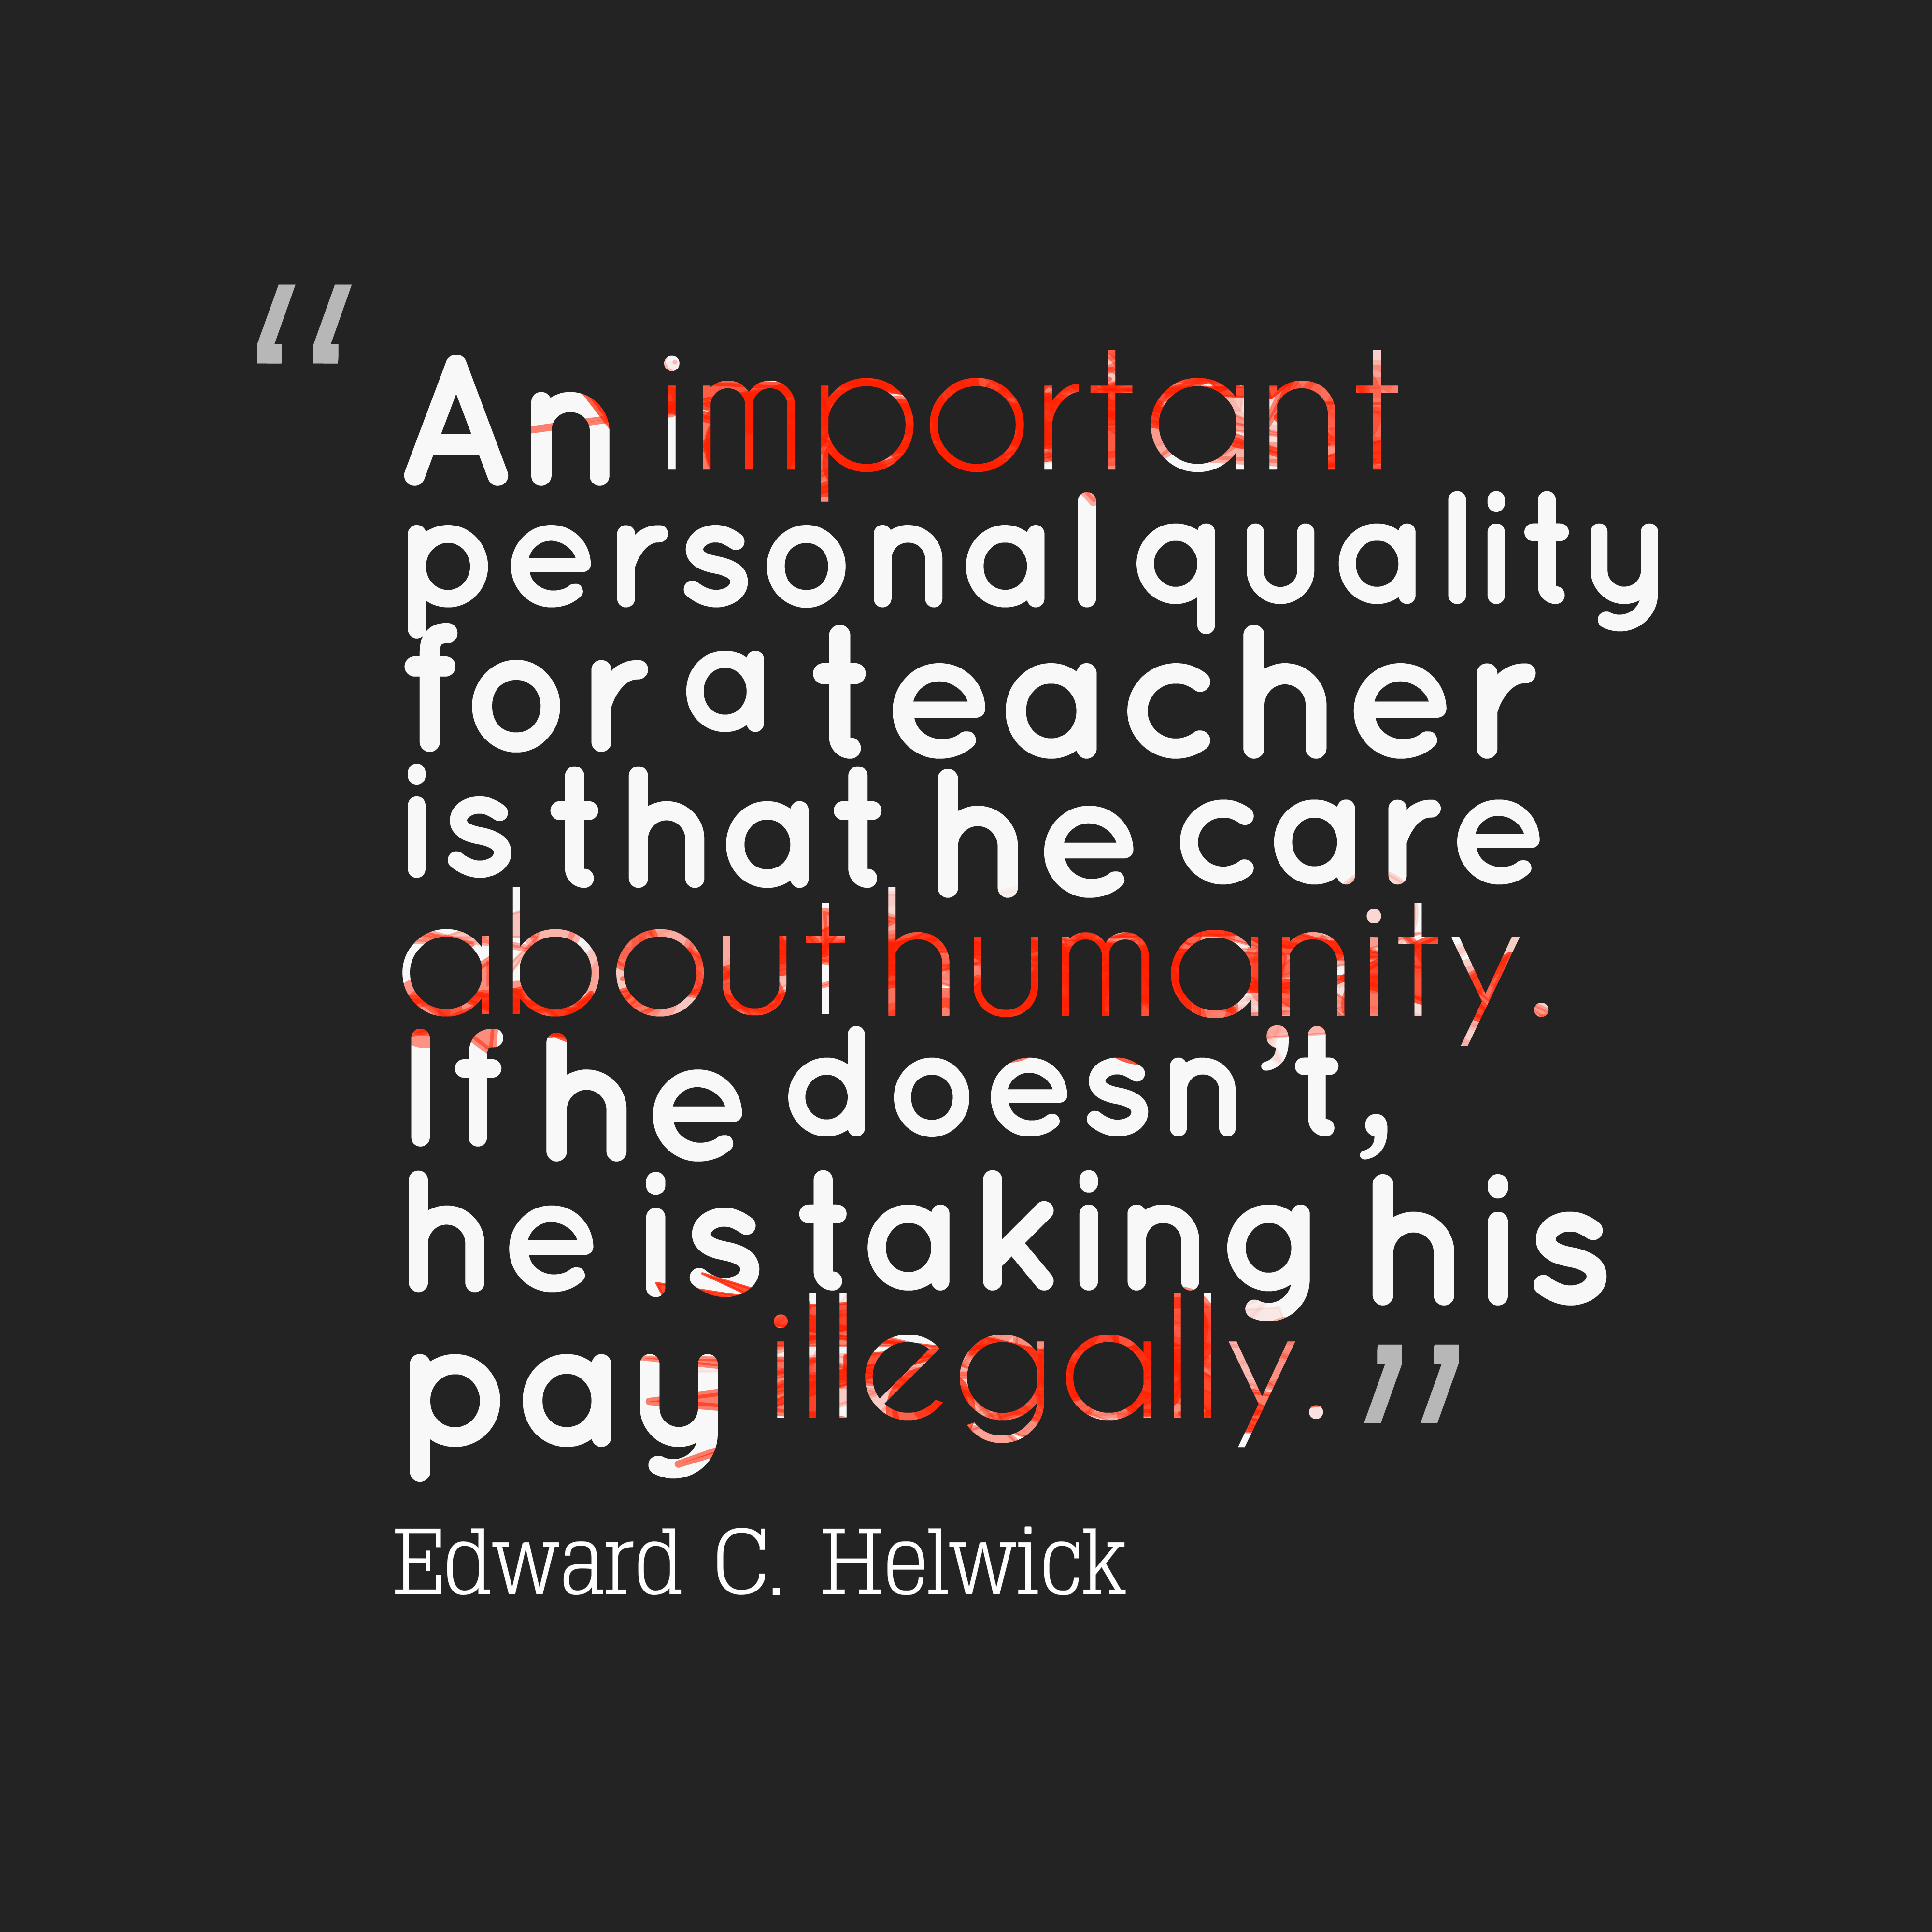 Quotes image of An important personal quality for a teacher is that he care about humanity. If he doesn't, he is taking his pay illegally.